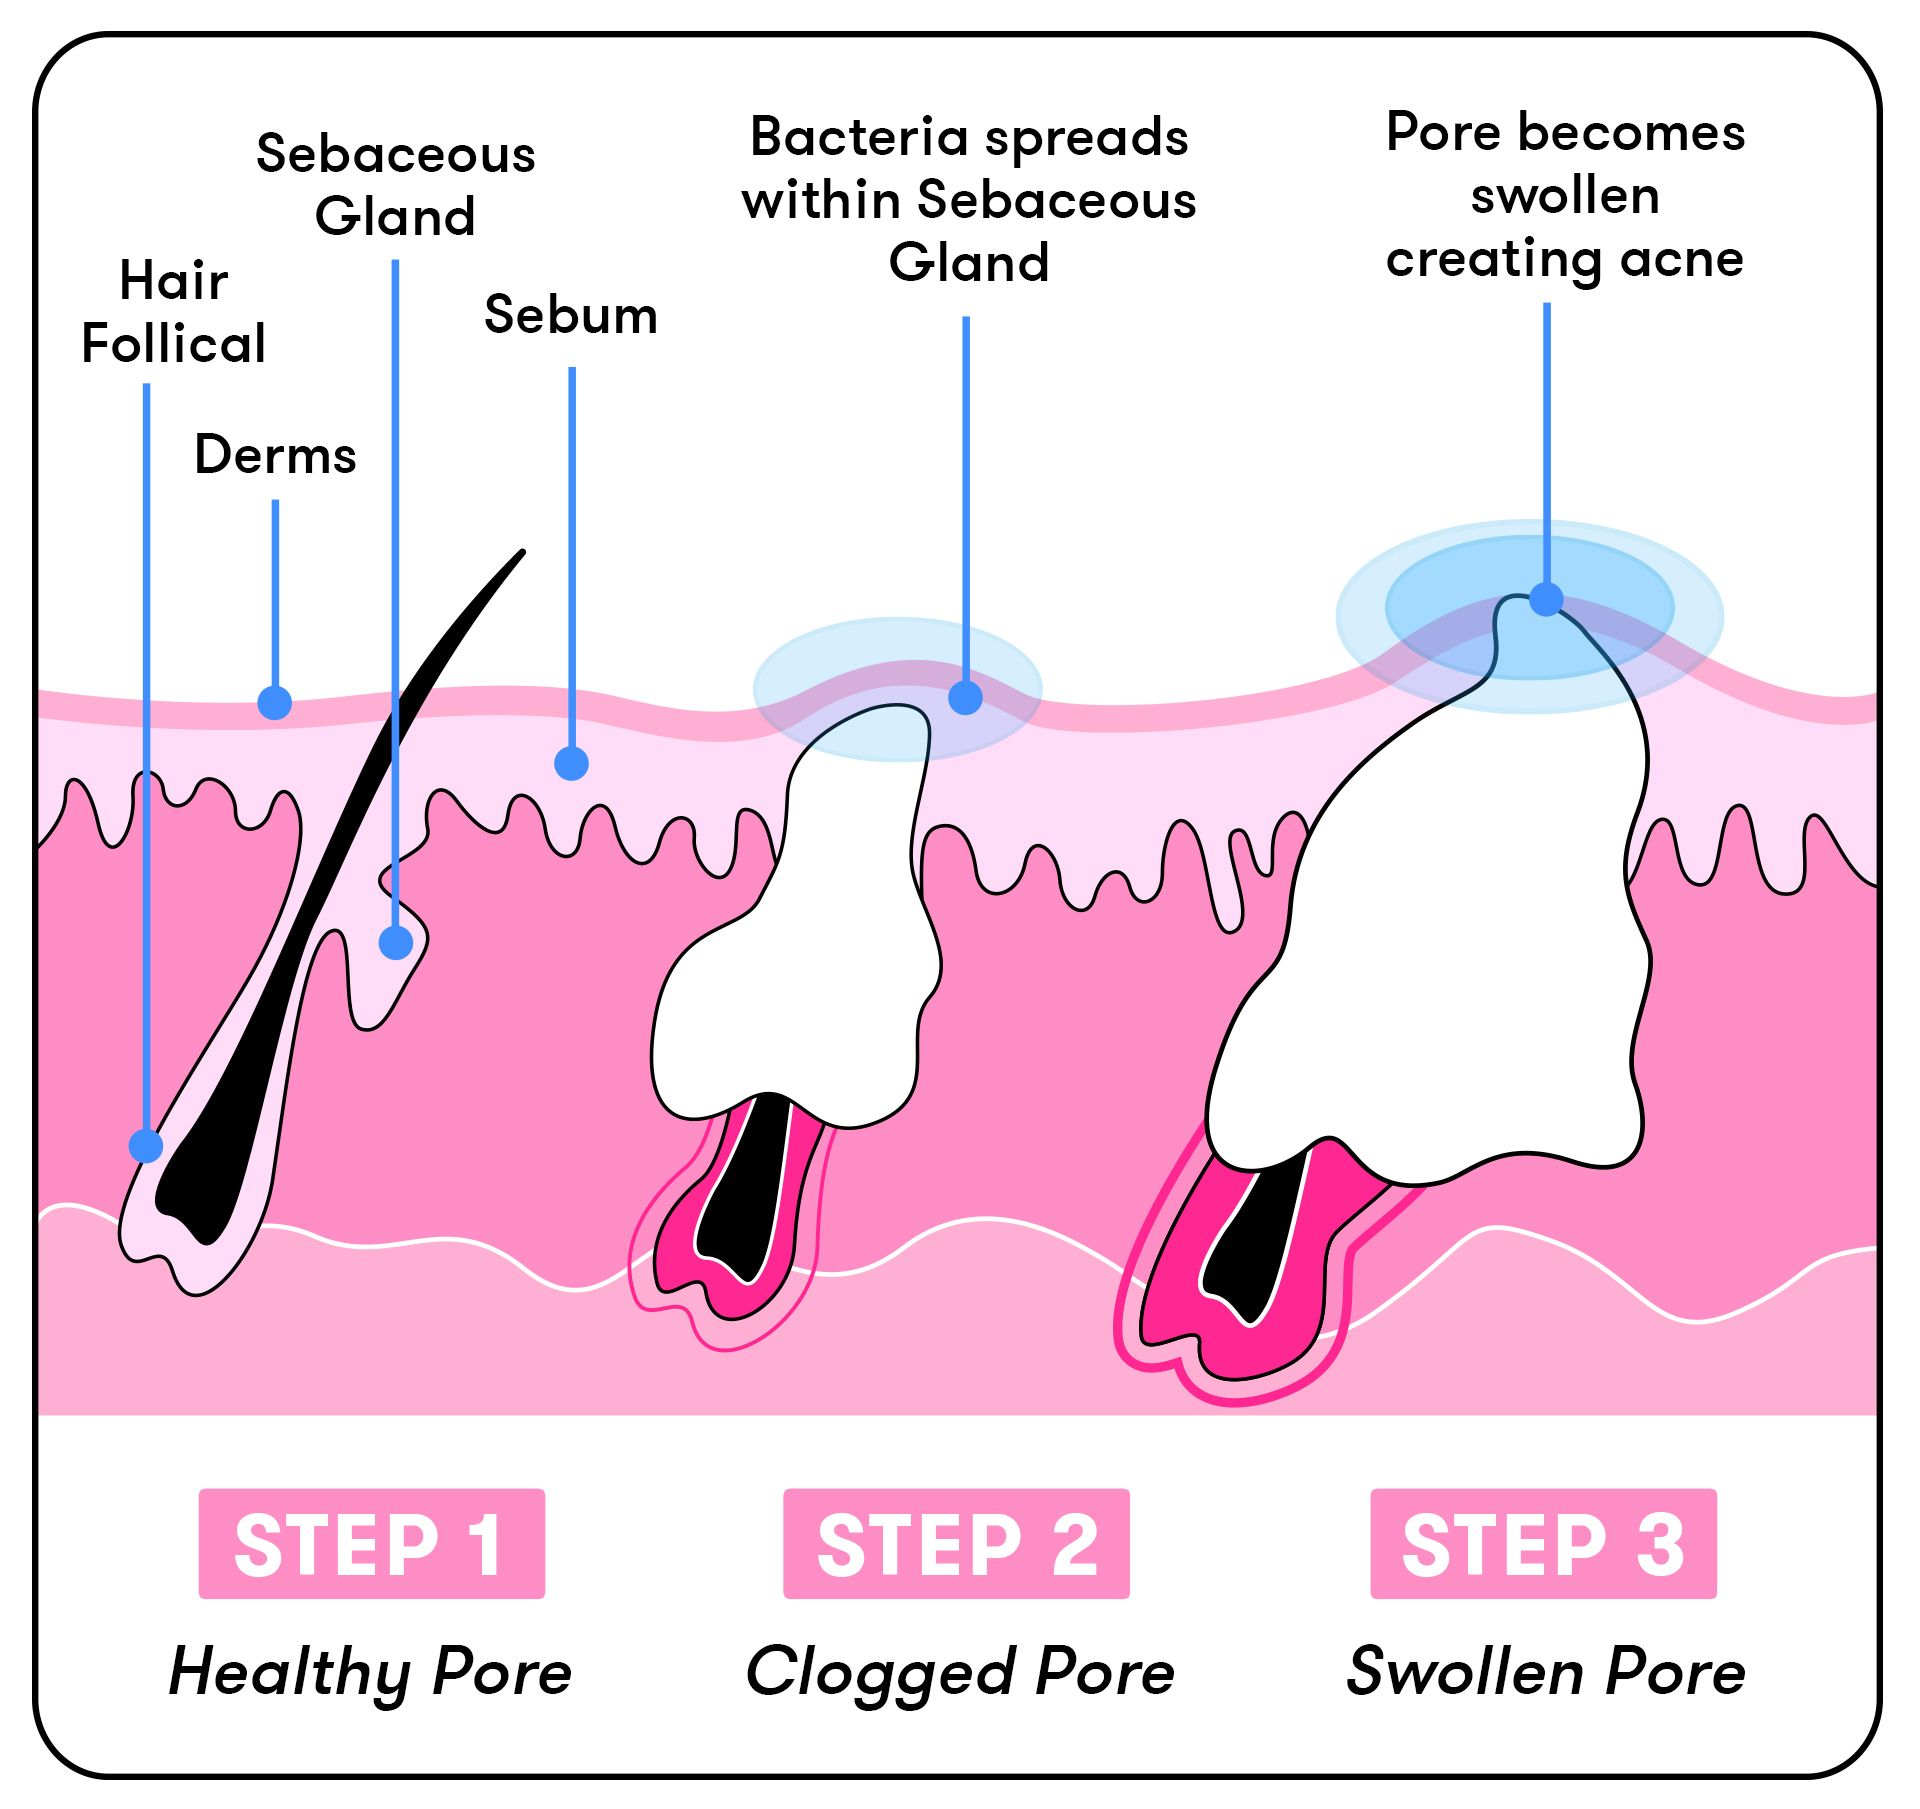 medium resolution of cystic acne 101 how to get rid of and treat cystic acne pimples large zits cystic zit diagram